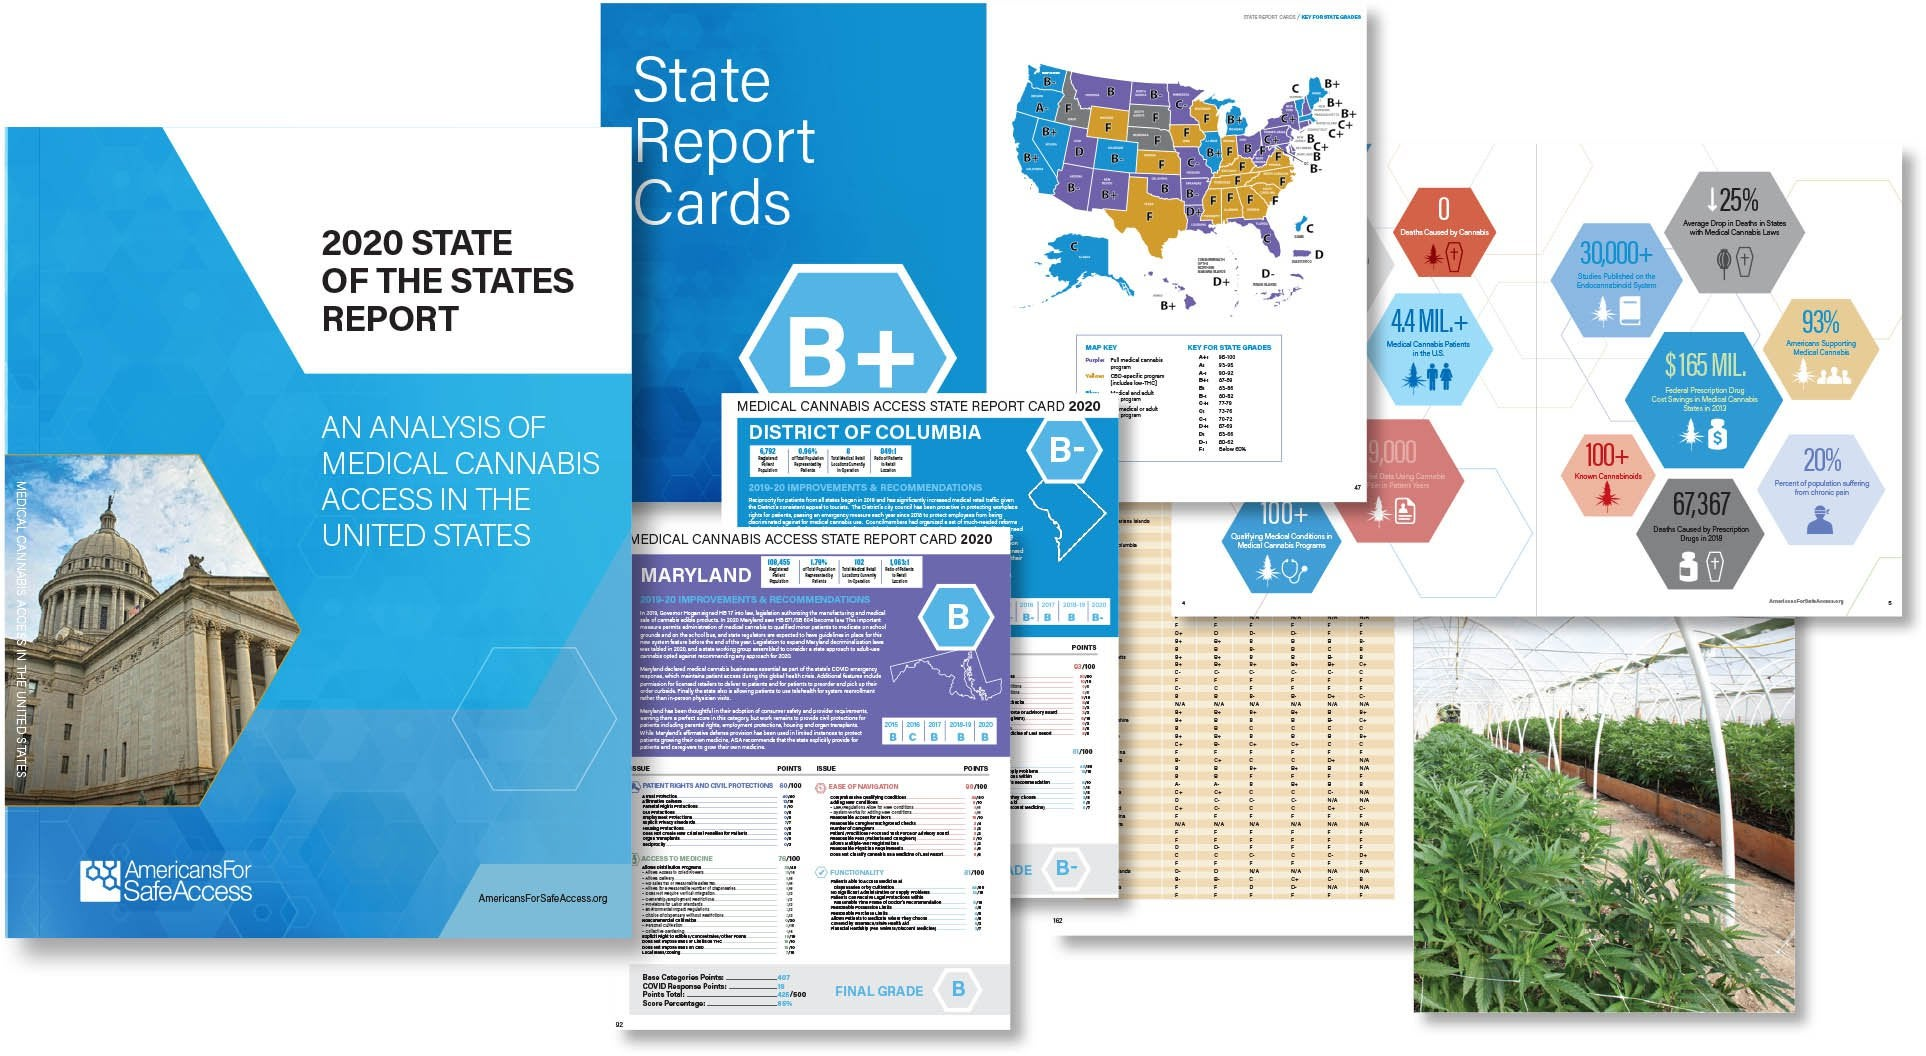 2020 State of the States Medical Cannabis Report Card